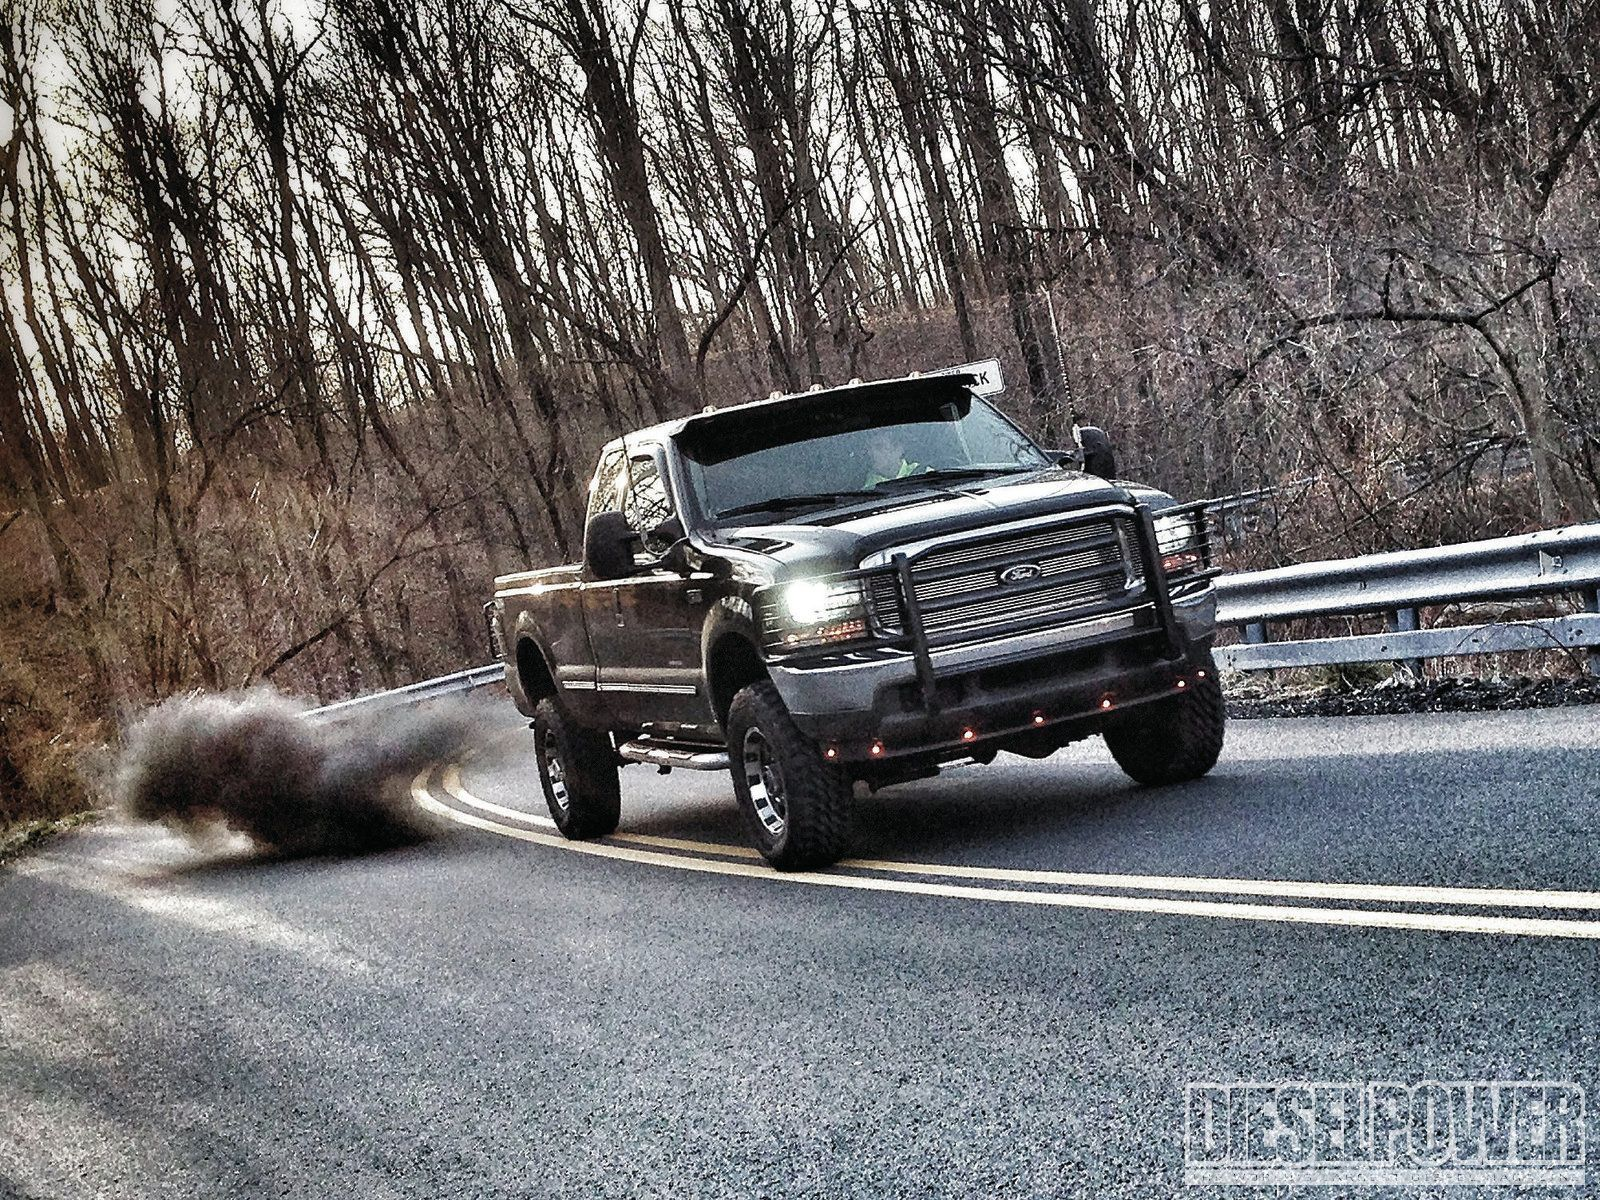 X Ford Truck Wallpapers Lifted ford trucks, Lifted ford